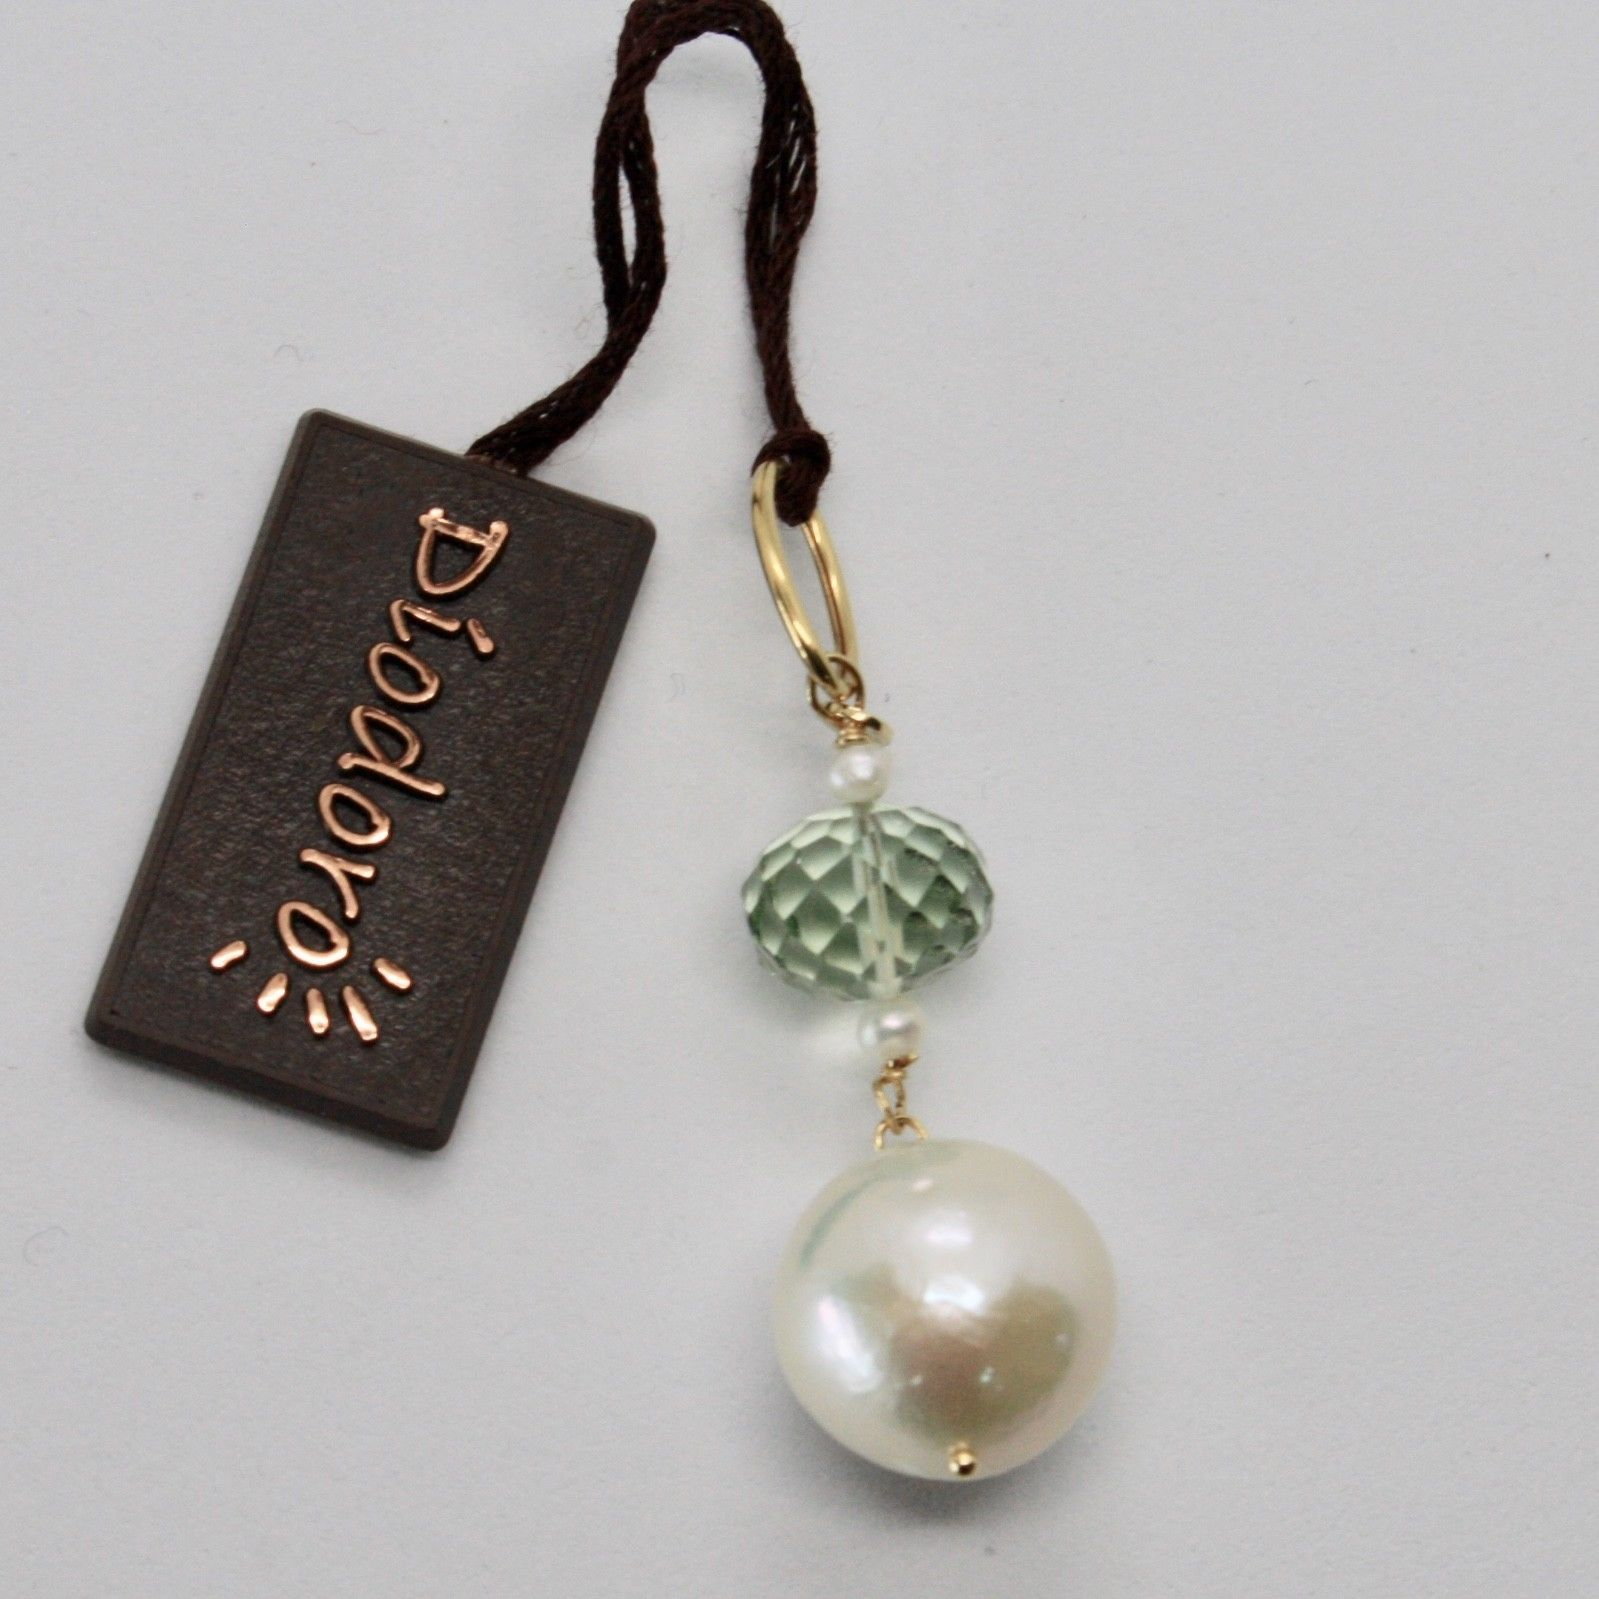 SOLID 18K YELLOW GOLD PENDANT WITH WHITE FW PEARL AND PRASIOLITE MADE IN ITALY